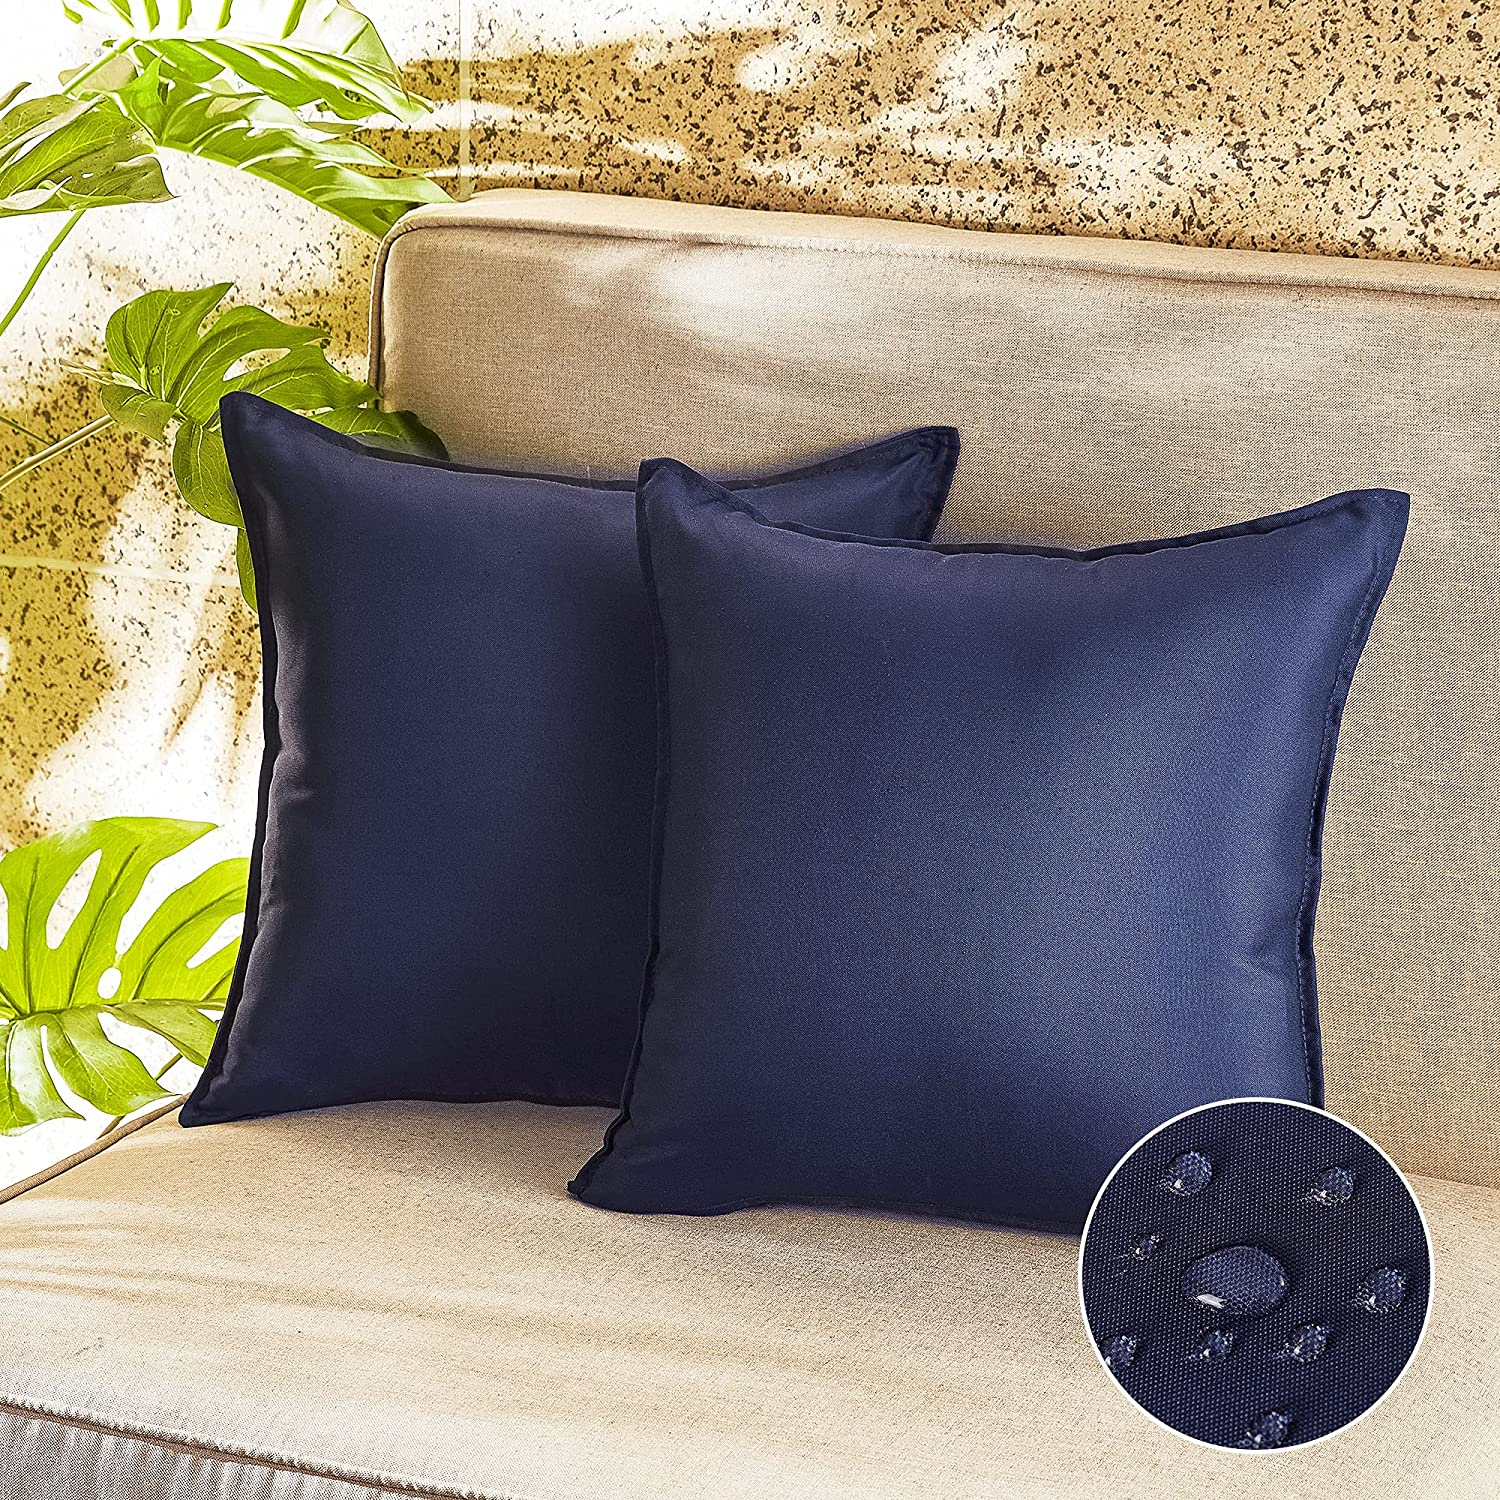 RYB HOME Blue Outdoor Pillow Covers Waterproof Dust Proof UV Protection Square Garden Cushion Covers for Patio Seating Tent Balcony Couch Sofa Porch Swing, 18x18 inch, Navy Blue, 2 Pcs